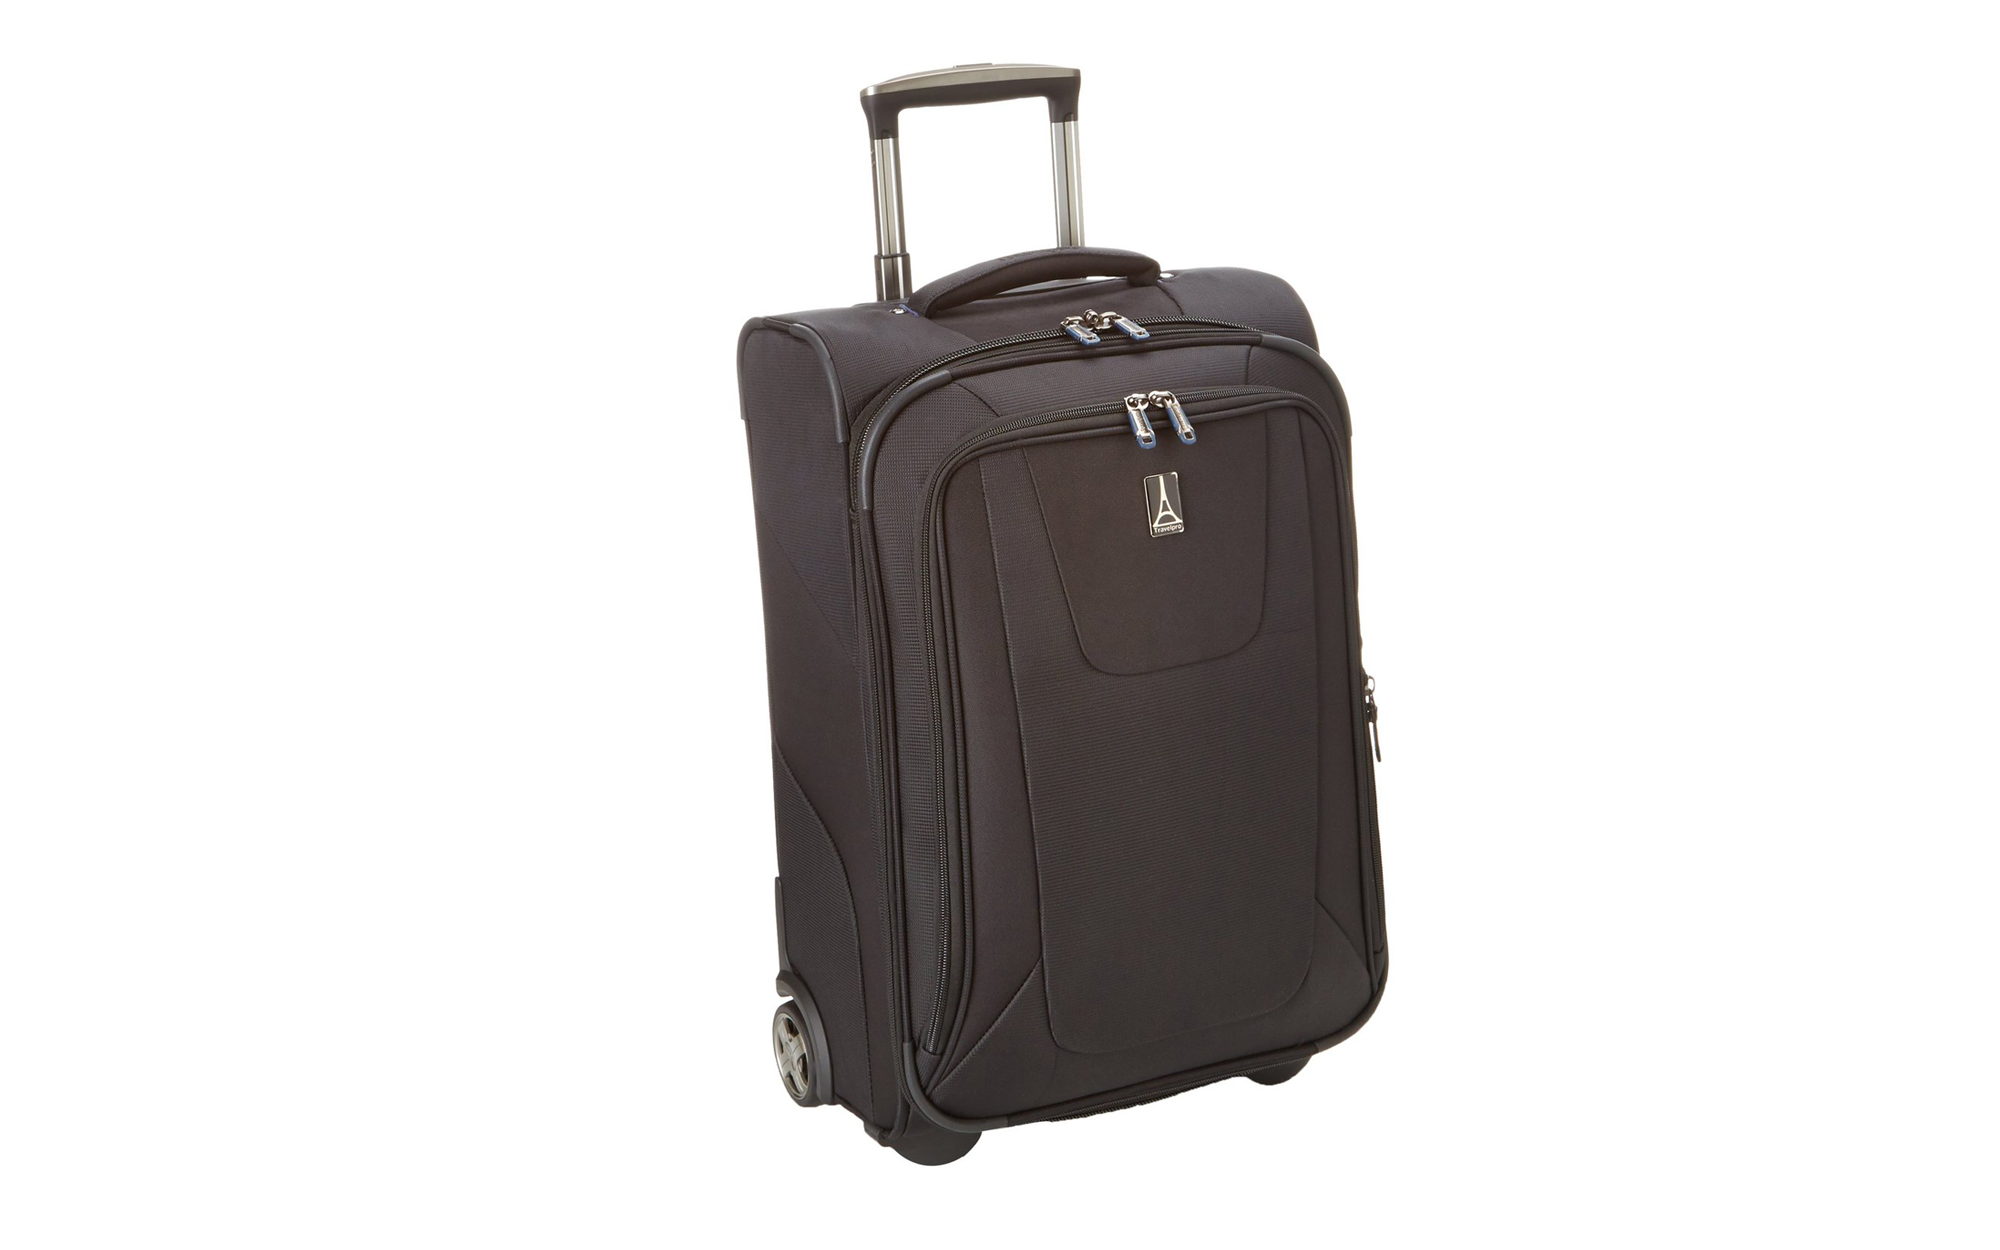 Best Carry-On Luggage for Business Travel: Travelpro rolla-board